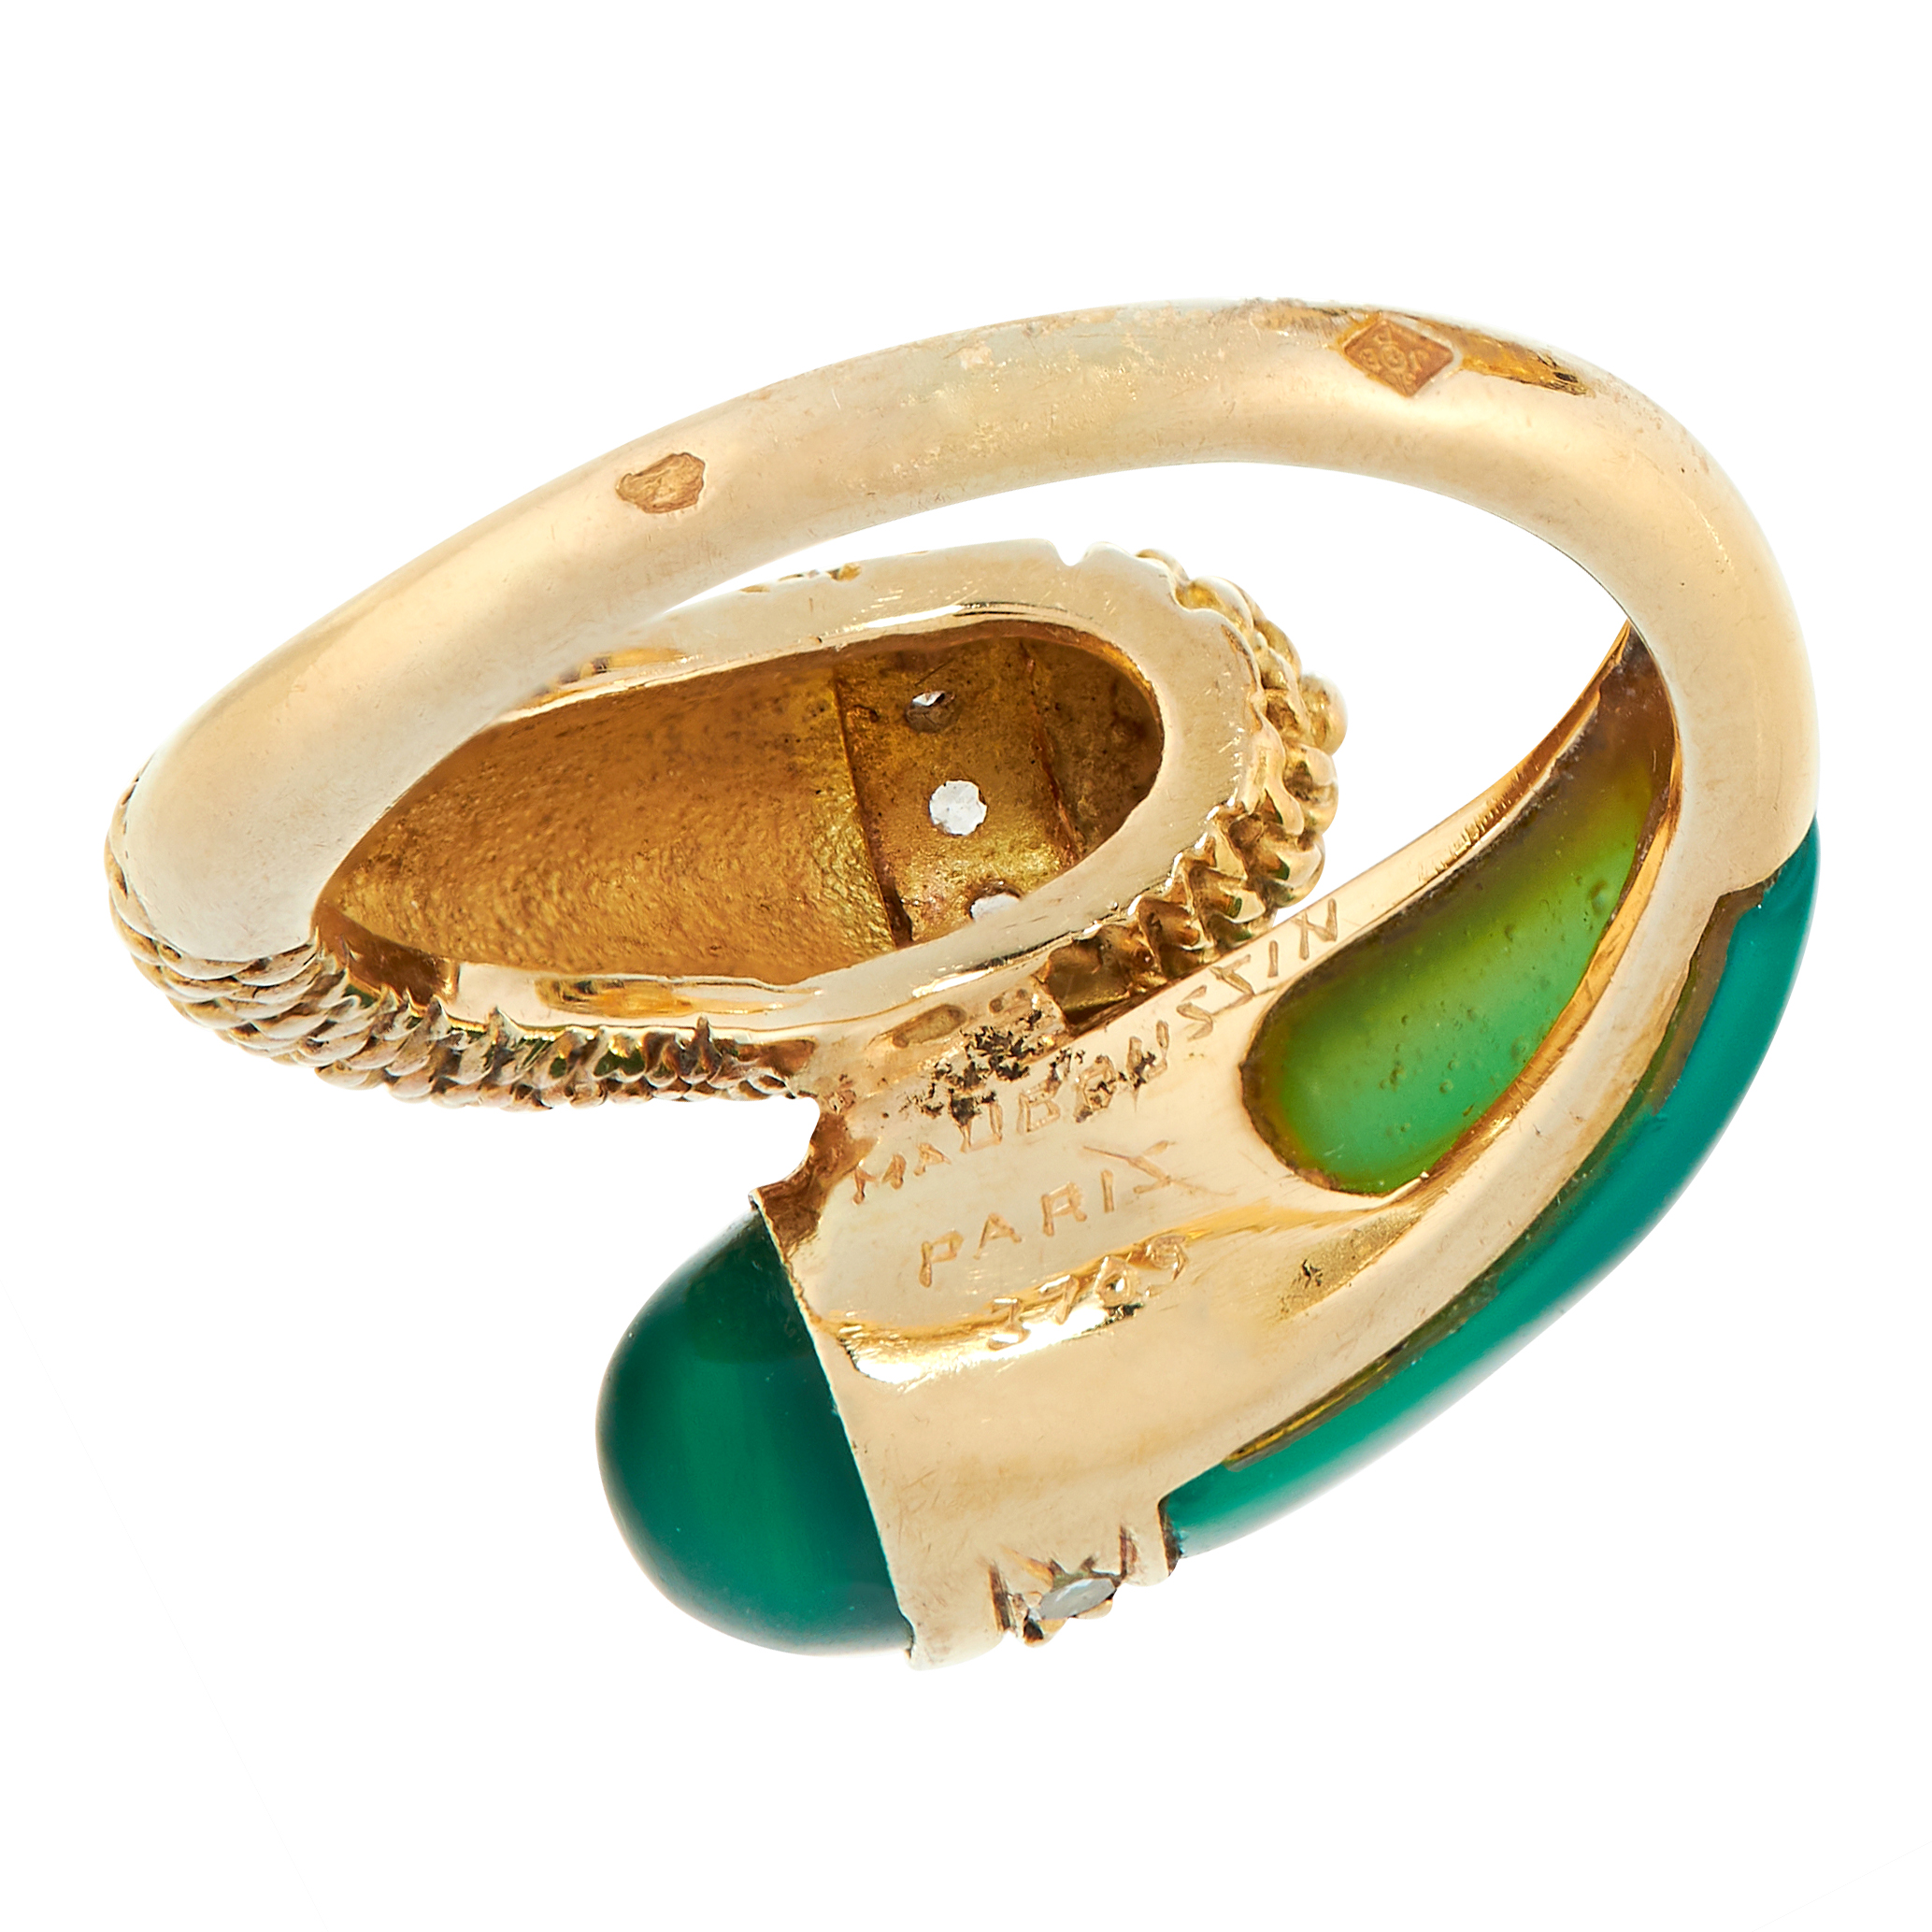 VINTAGE CHRYSOPRASE AND DIAMOND RING, MAUBOUSSIN in 18ct yellow gold, in toi et moi design, set with - Image 3 of 3